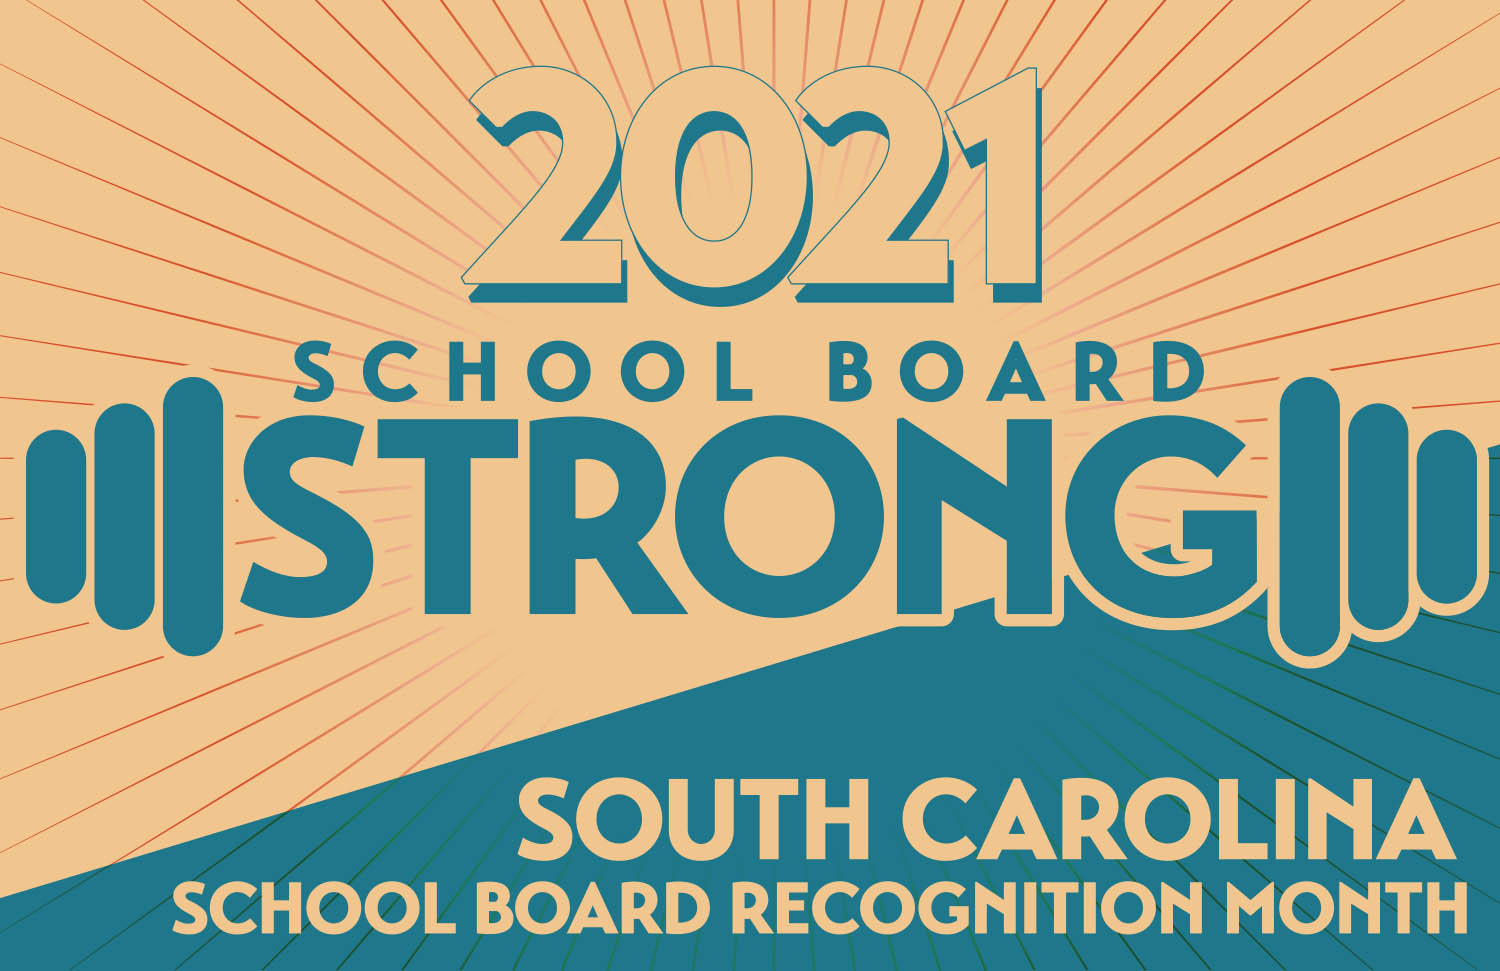 2021 School Board Recognition Month